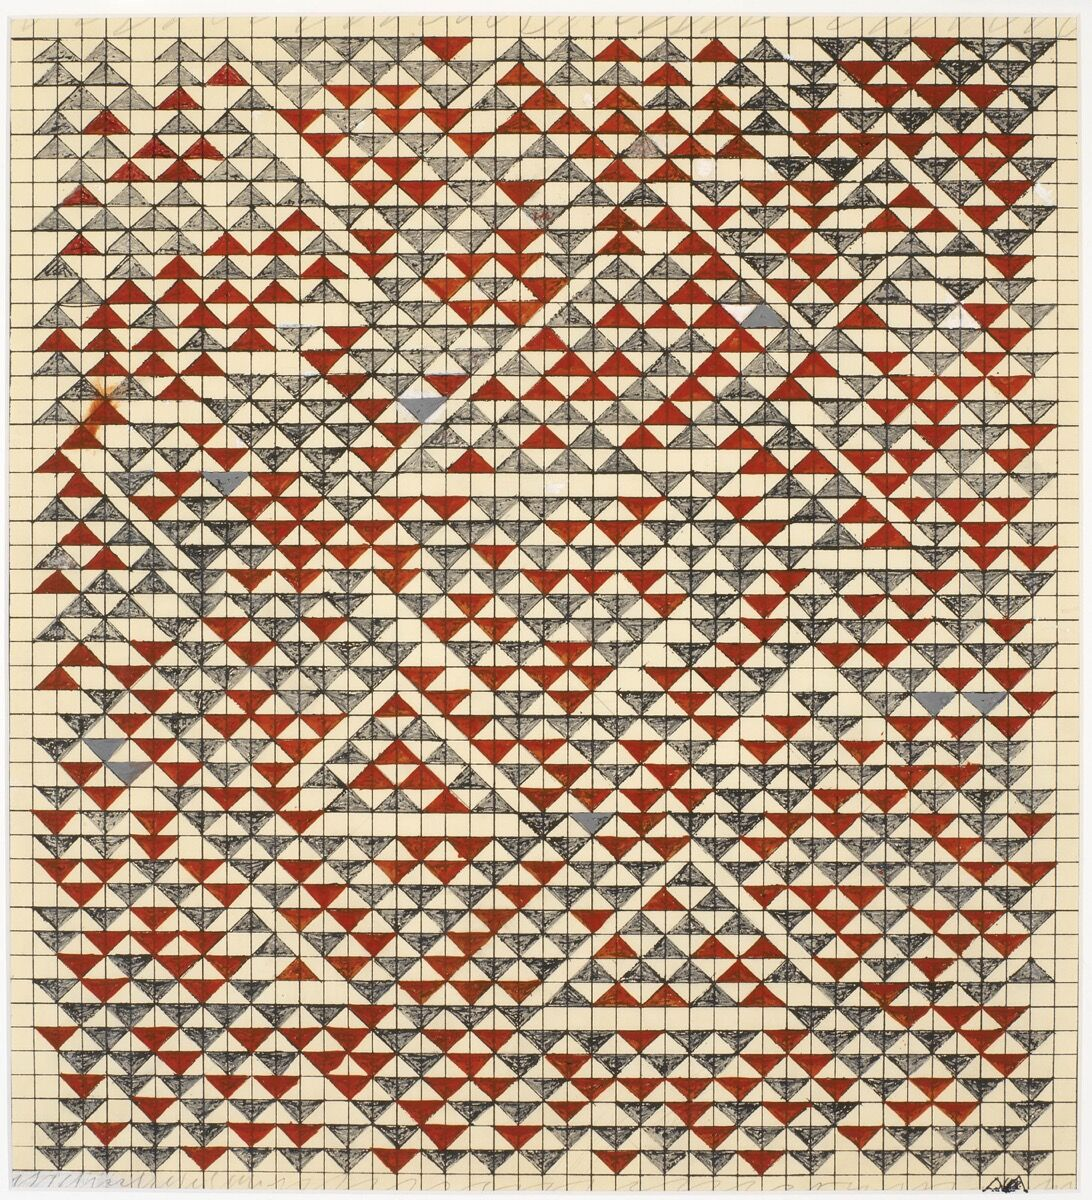 Anni Albers, Estudio para Camino Real, 1967. © The Josef and Anni Albers Foundation / Artists Rights Society (ARS), Nueva York 2019. Foto de Tim Nighswander / Imaging4Art.  Cortesía de The Art Institute of Chicago.